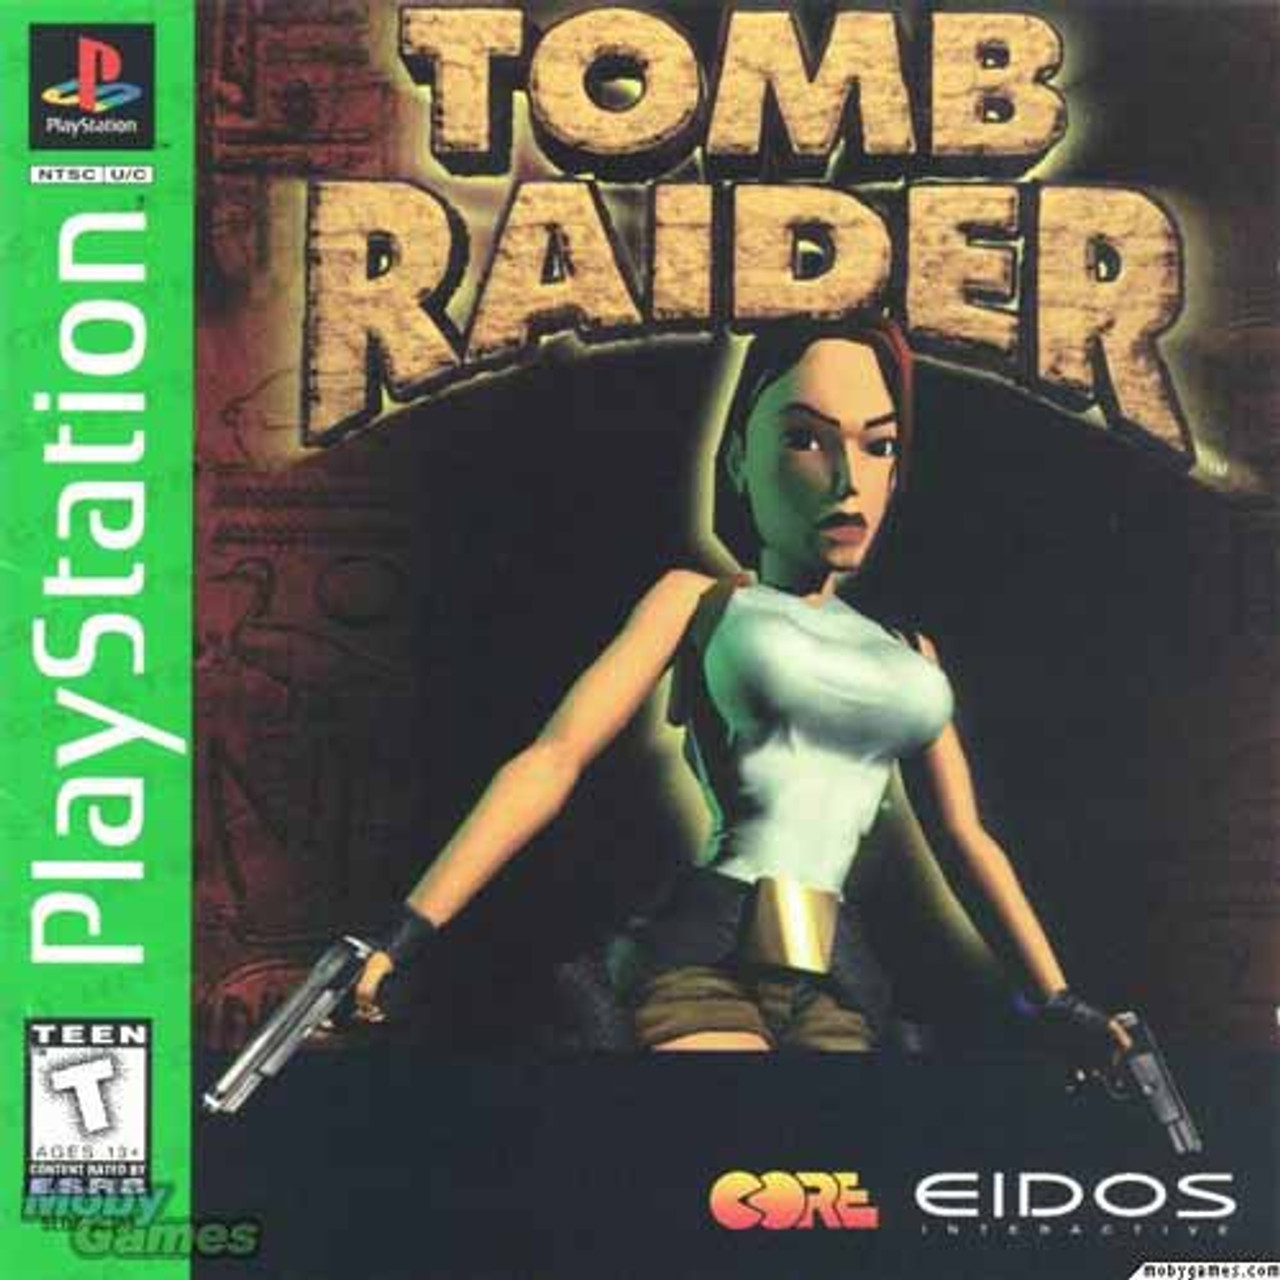 Complete Tomb Raider Greatest Hits Ps1 Game For Sale Dkoldies